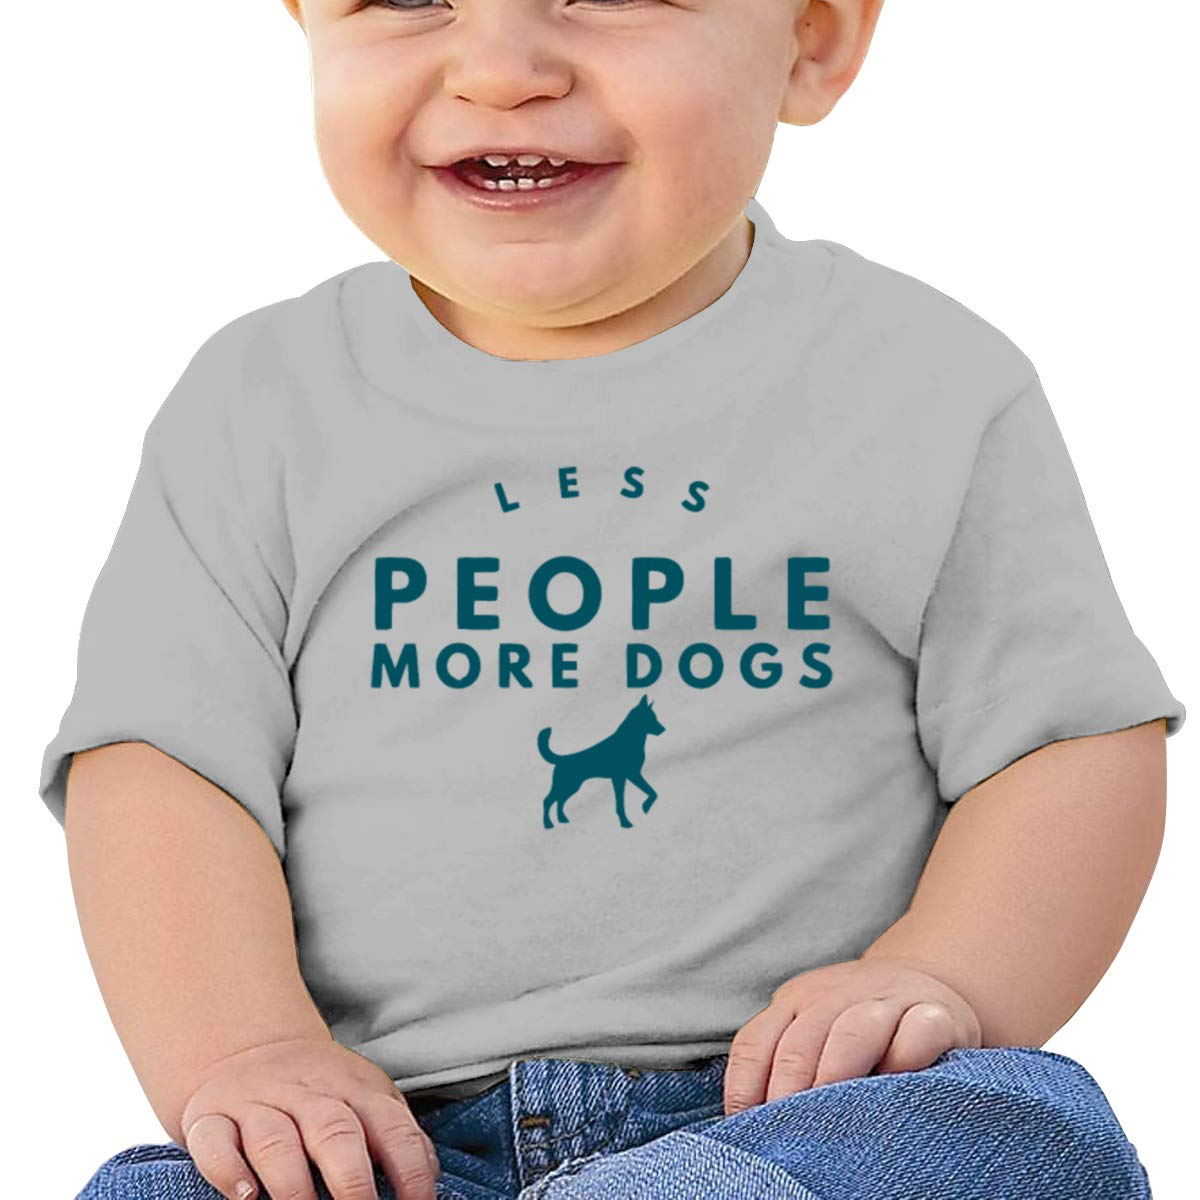 Arsmt Less People More Dogs Toddler Short Sleeve T-Shirt Girls Birthday Gift